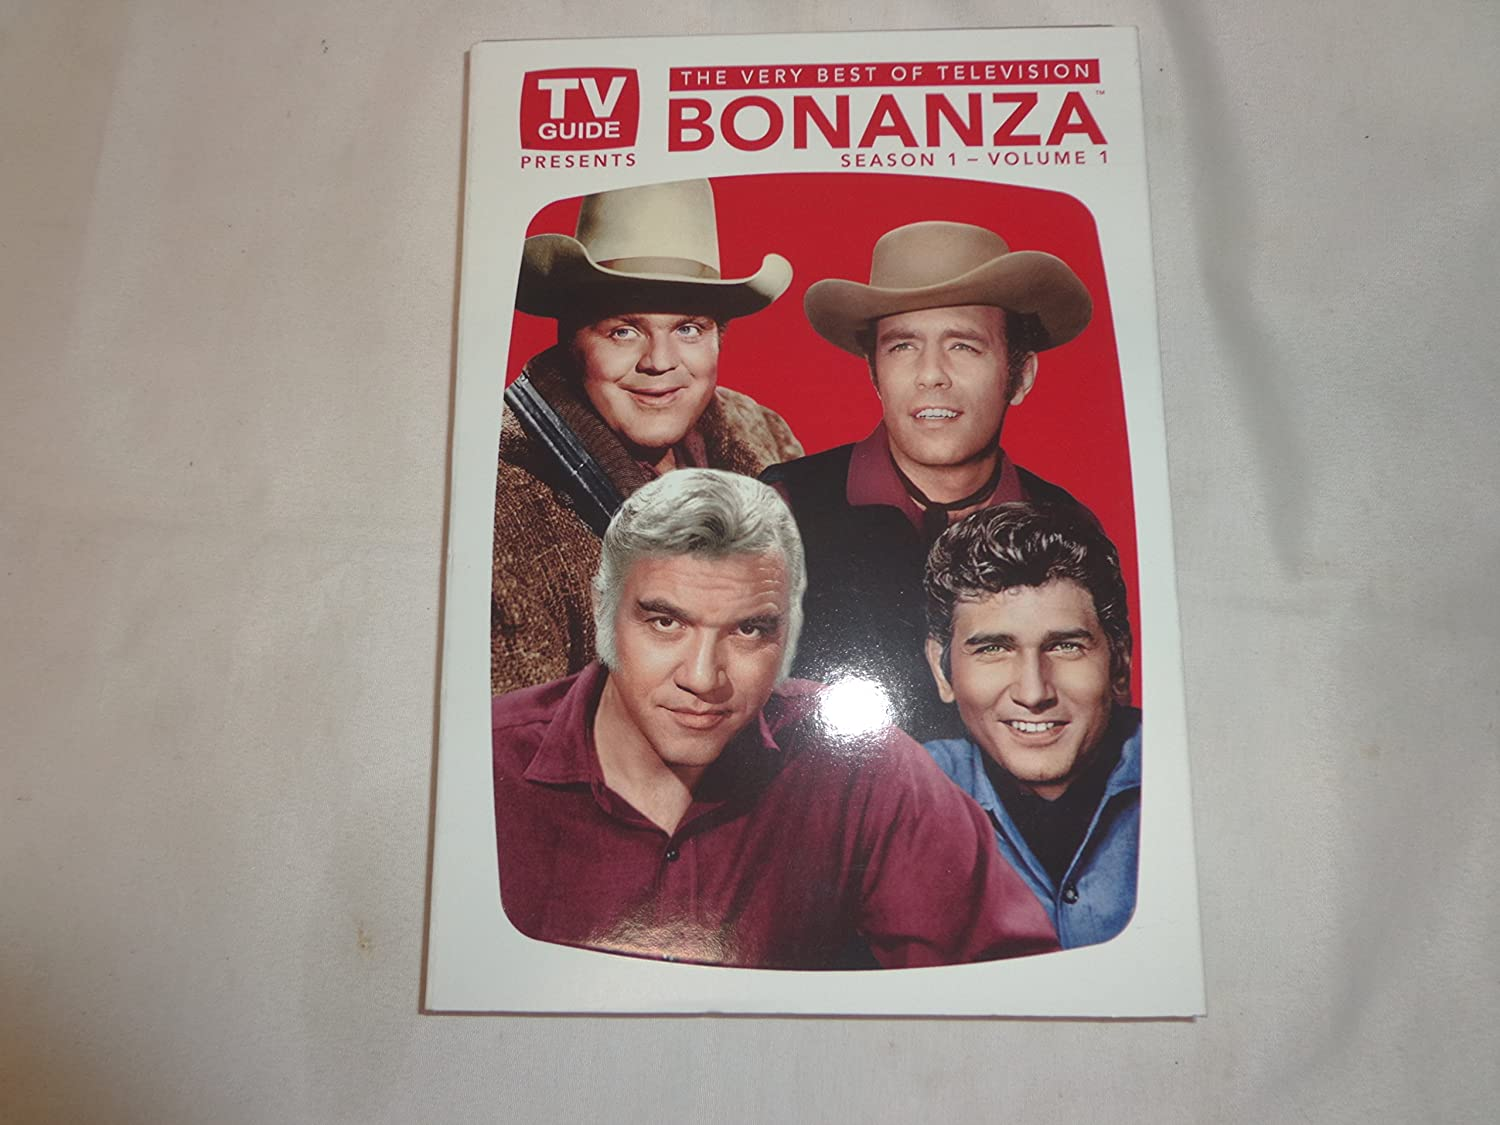 Bonanza official First Season Vol 1